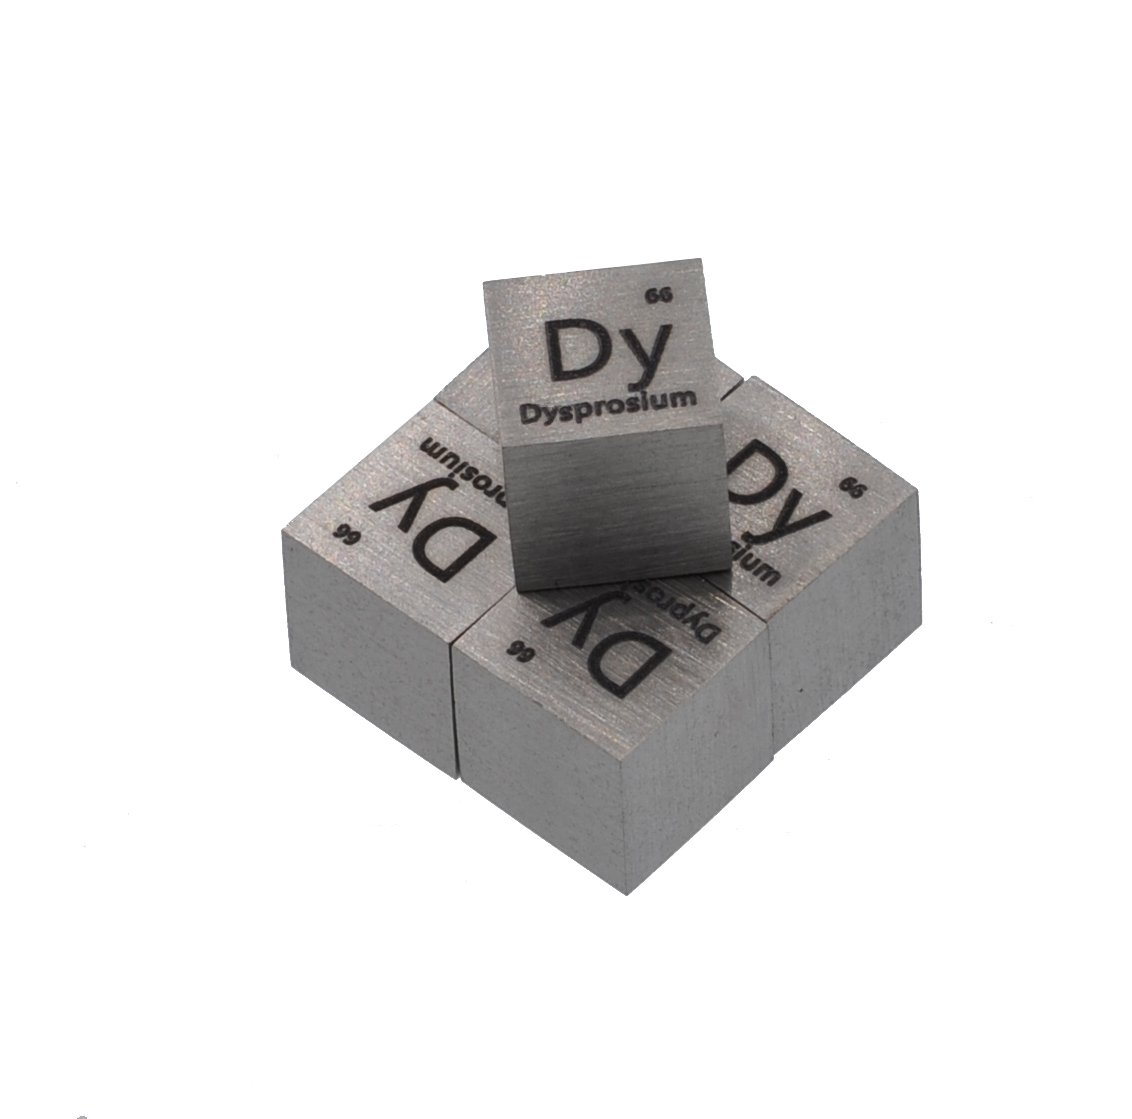 Dysprosium Metal 10mm Density Cube 99.5% Pure for Element Collection